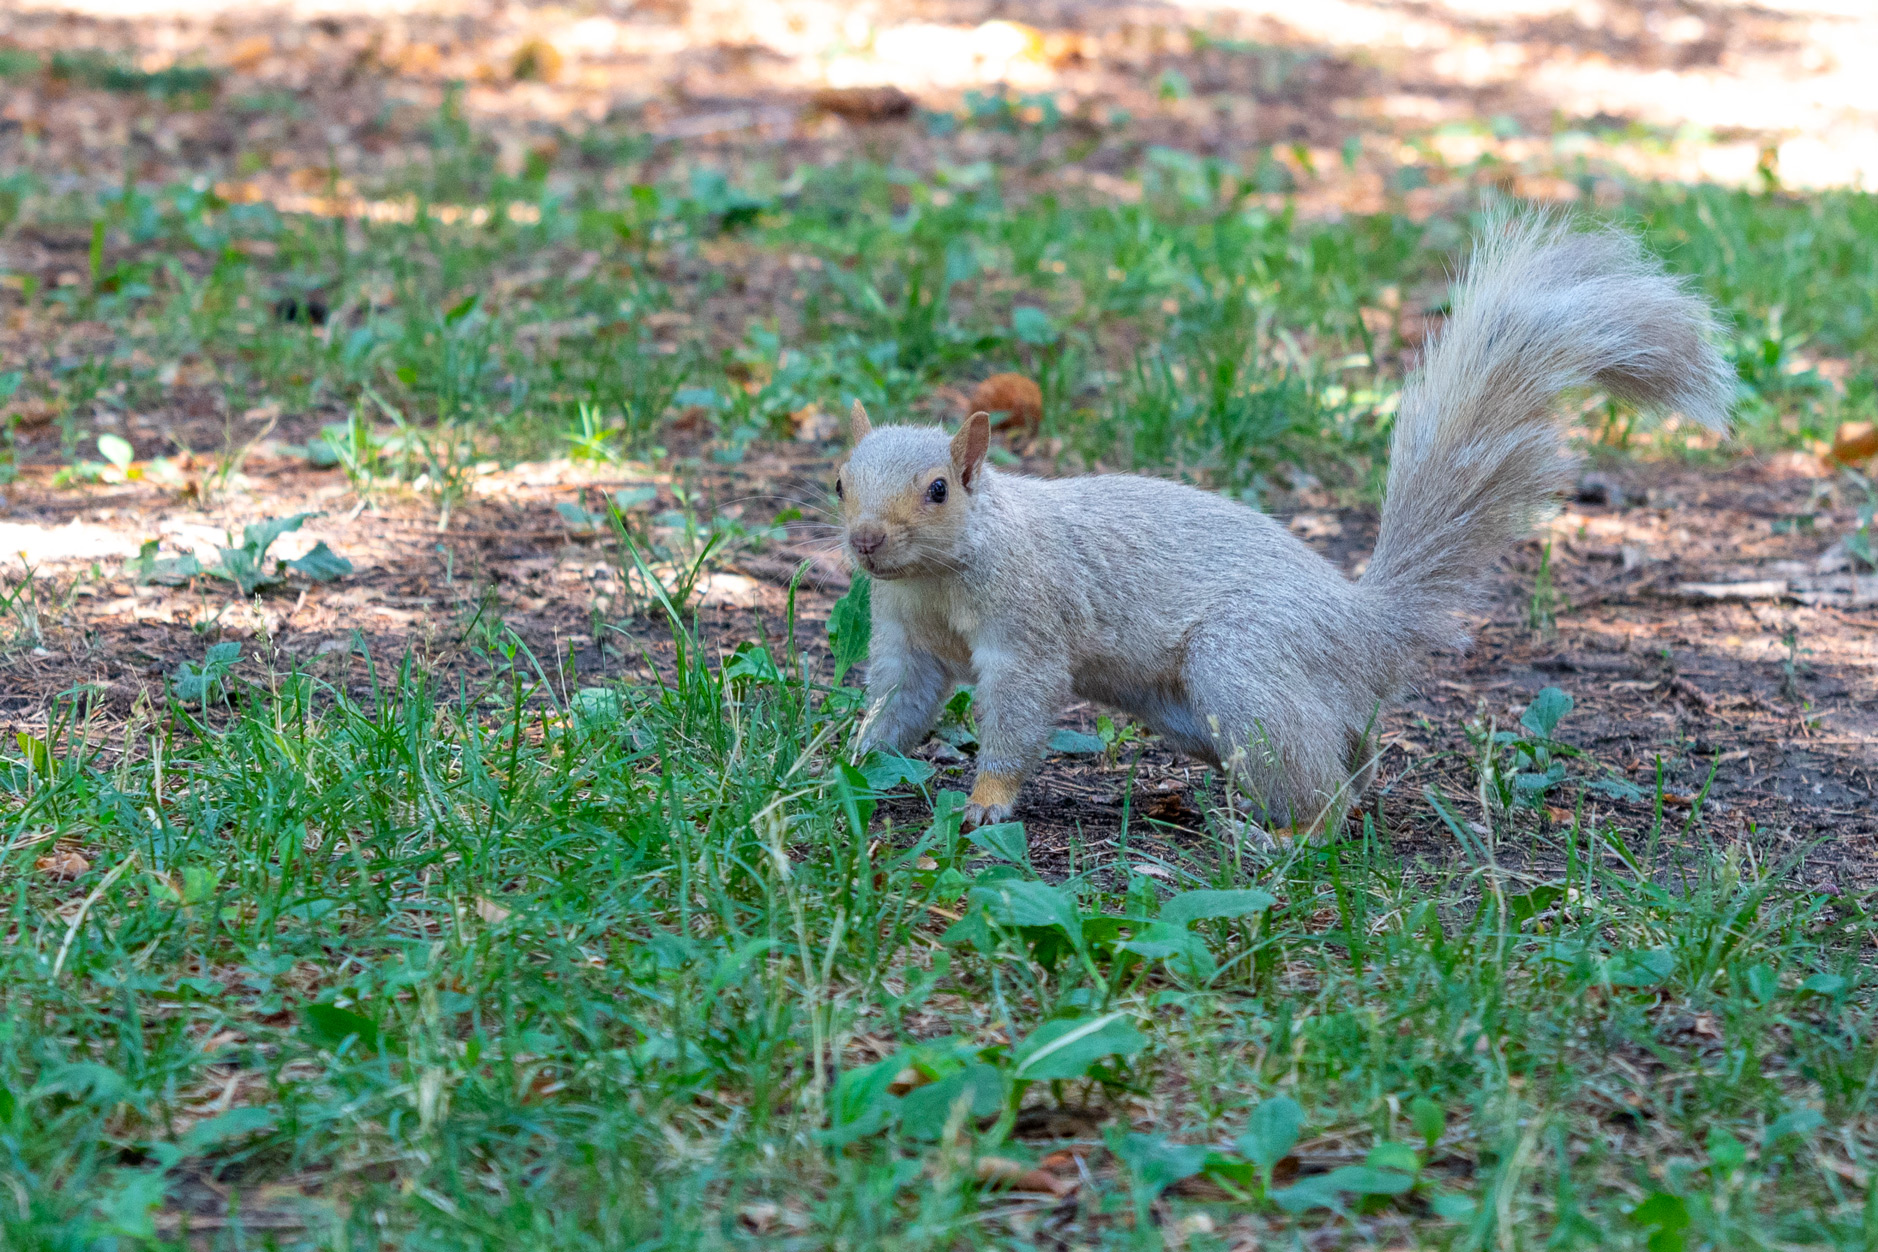 White squirrel with beady black eyes crouched on sparse grass